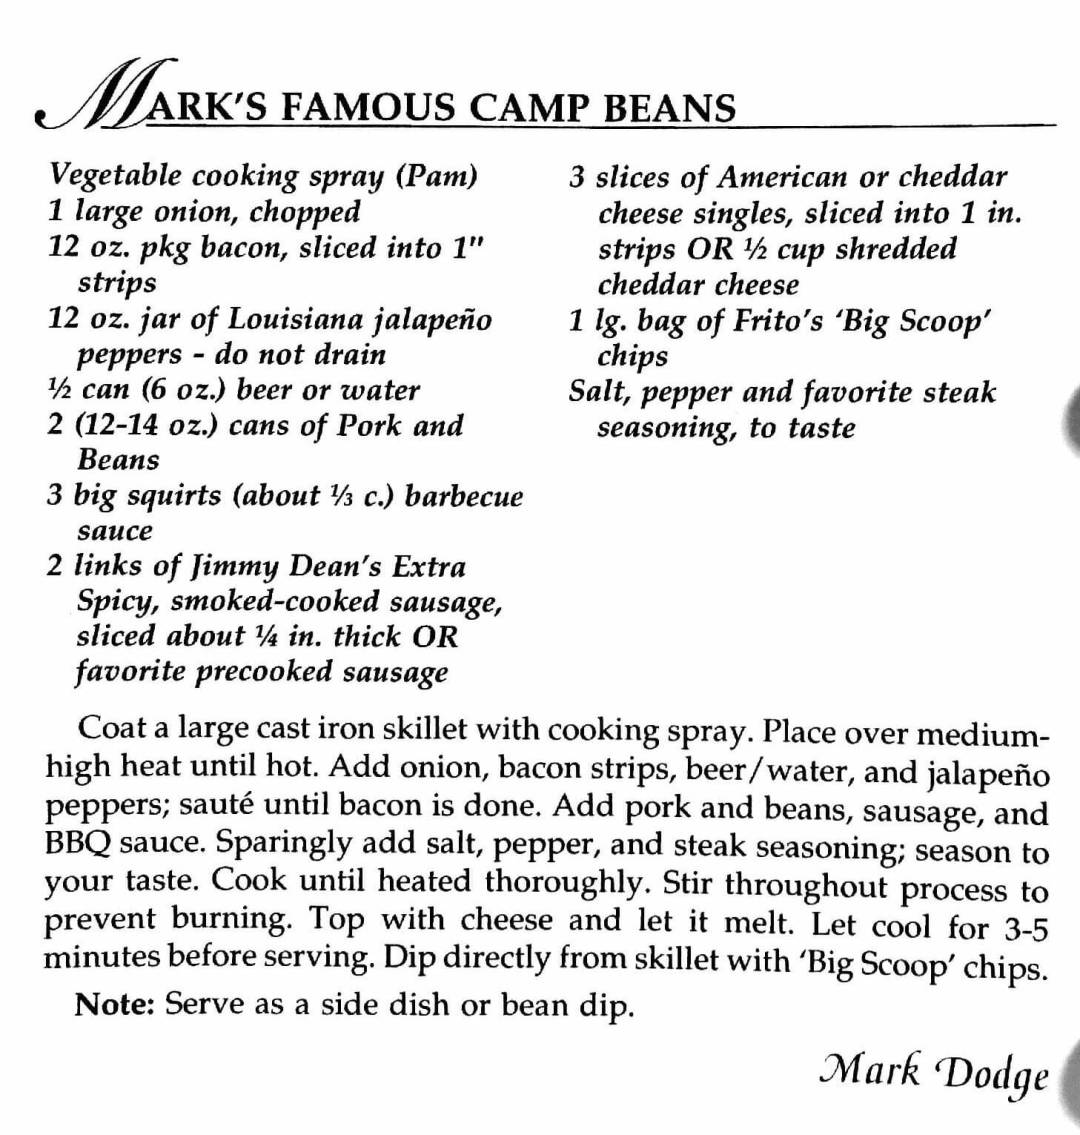 Mark's Famous Camp Beans, A Taste of History Cookbook, Watford City, ND